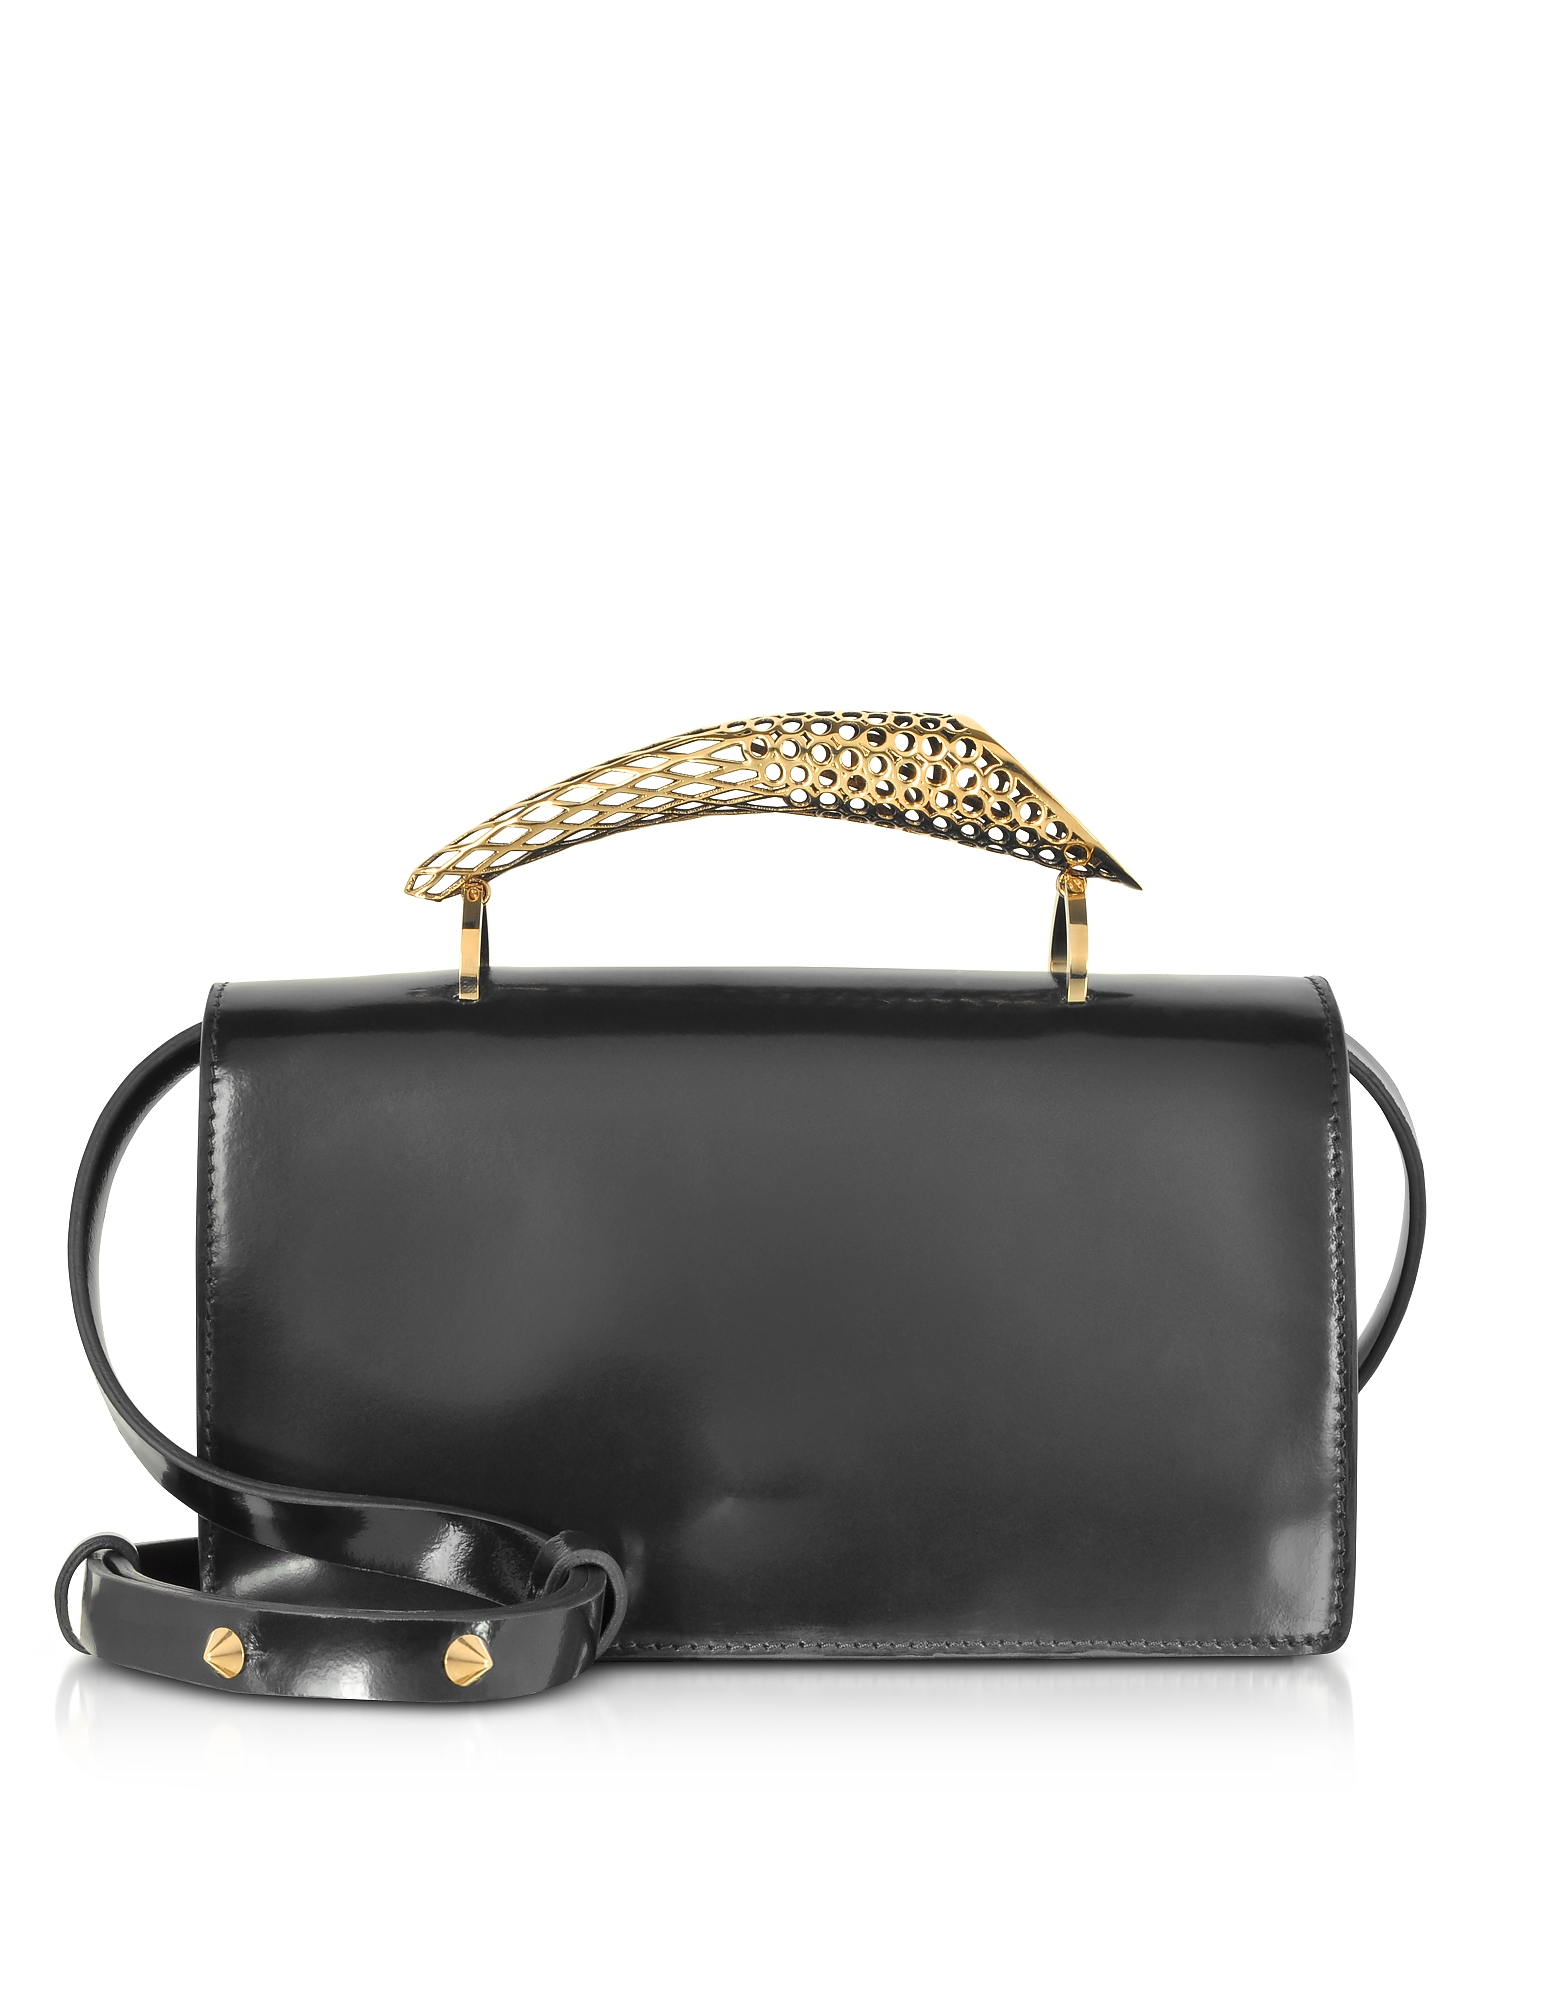 Maissa  Handbags Black Glossy Leather Middle Horn Shoulder Bag w/Gold Brass Middle Horn